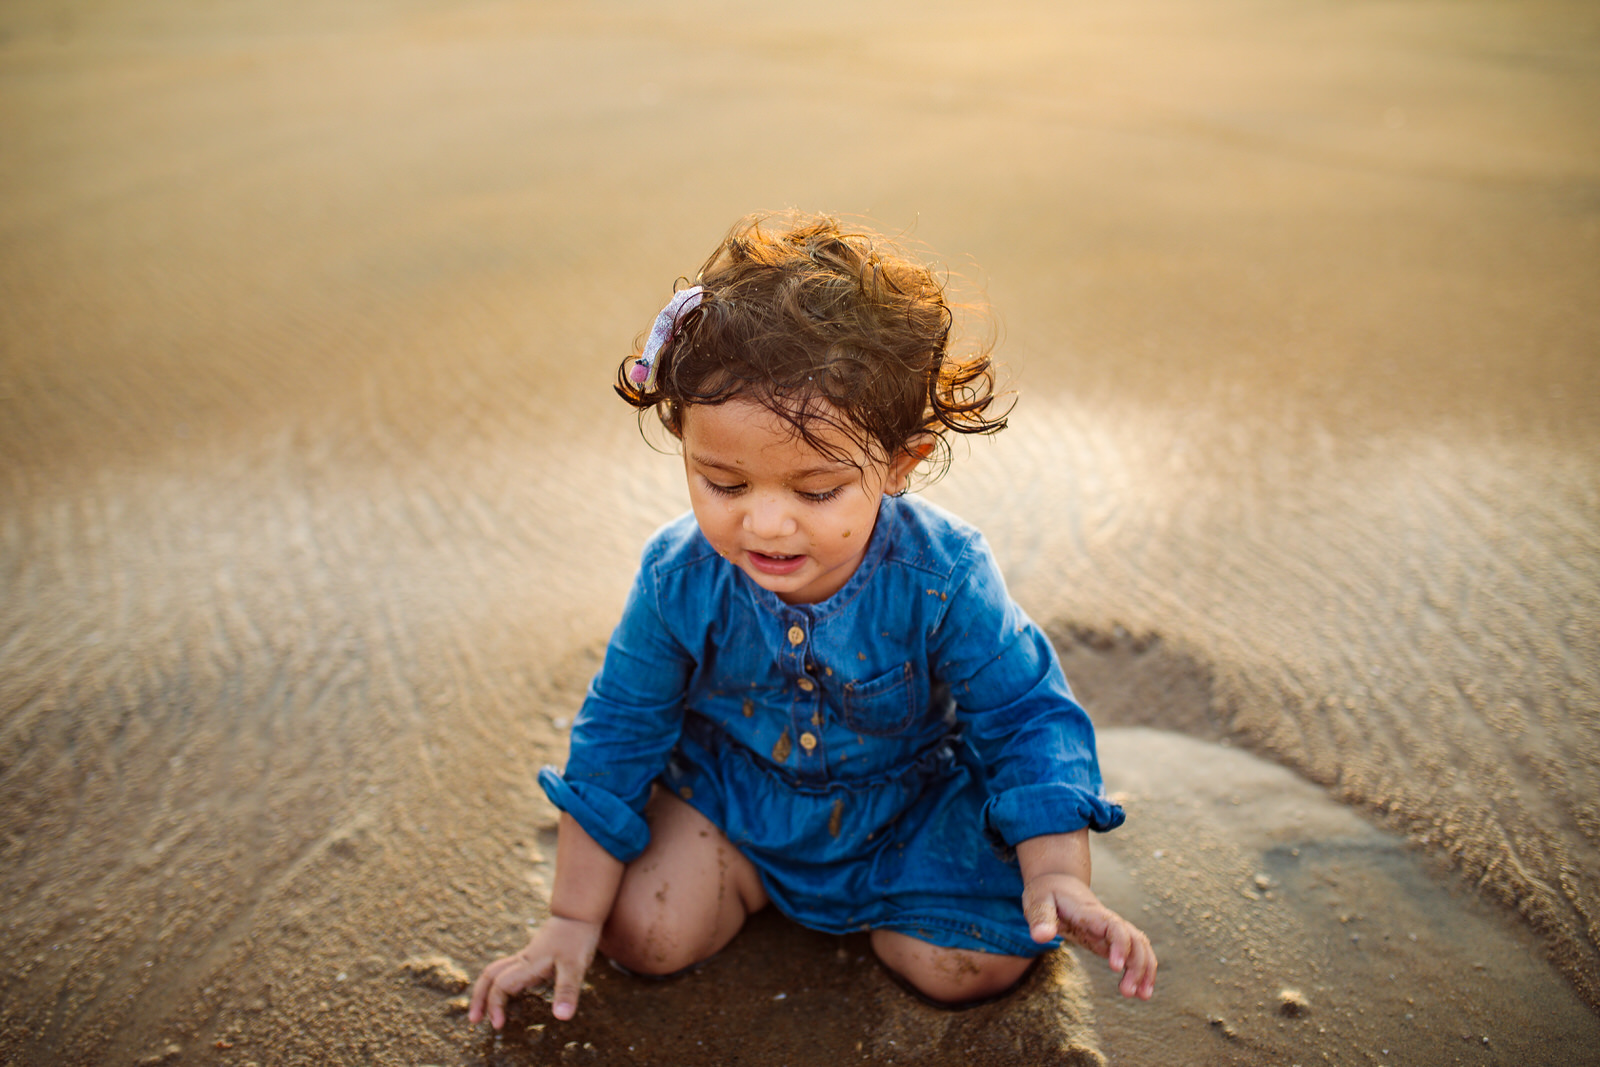 Ashlynn at the beach-71.jpg